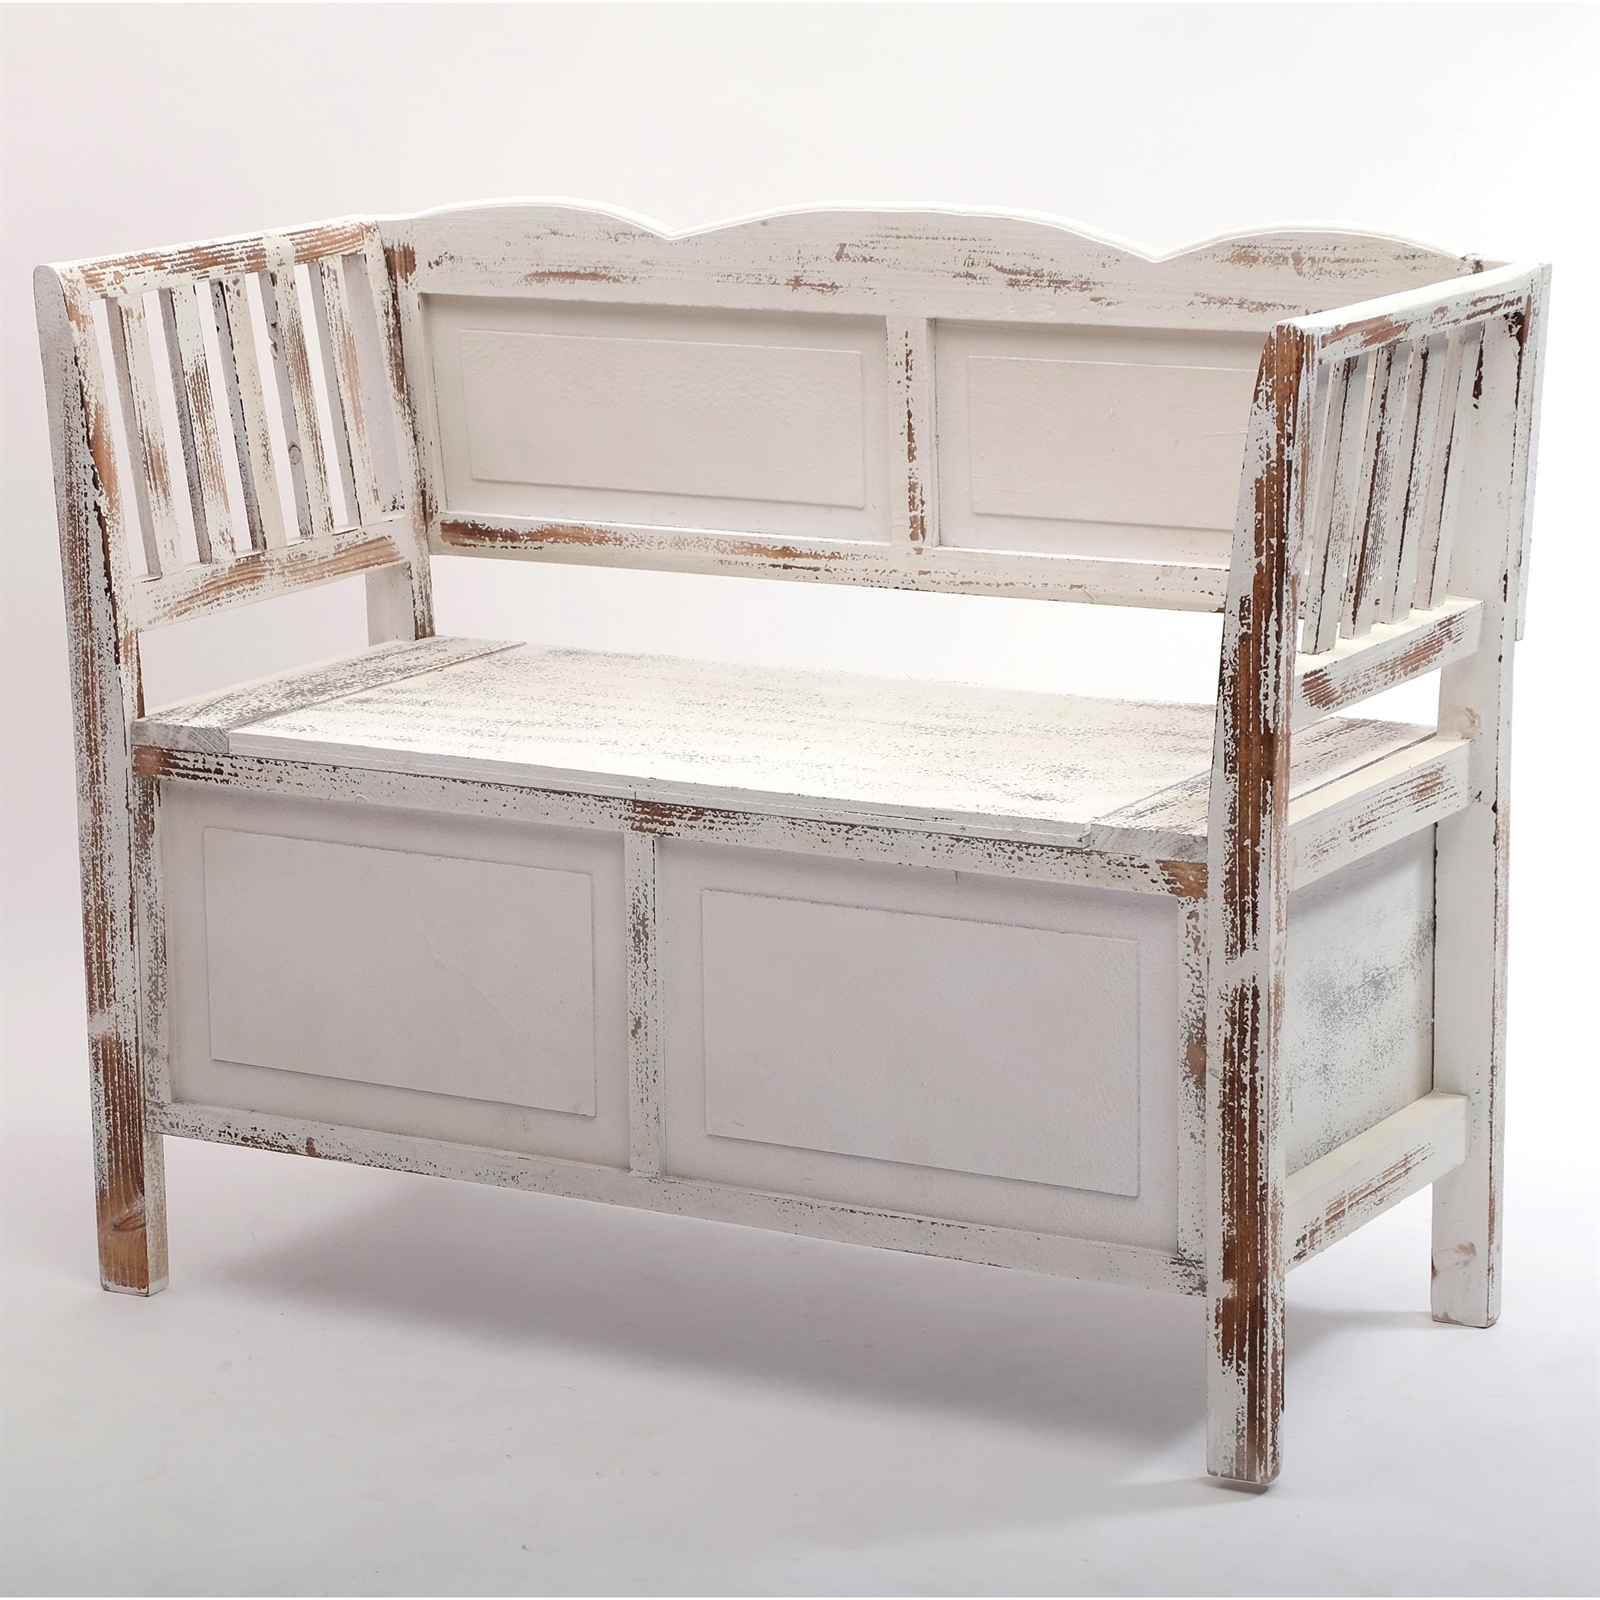 sitzbank farm wei braun 105 cm shabby chic bank. Black Bedroom Furniture Sets. Home Design Ideas